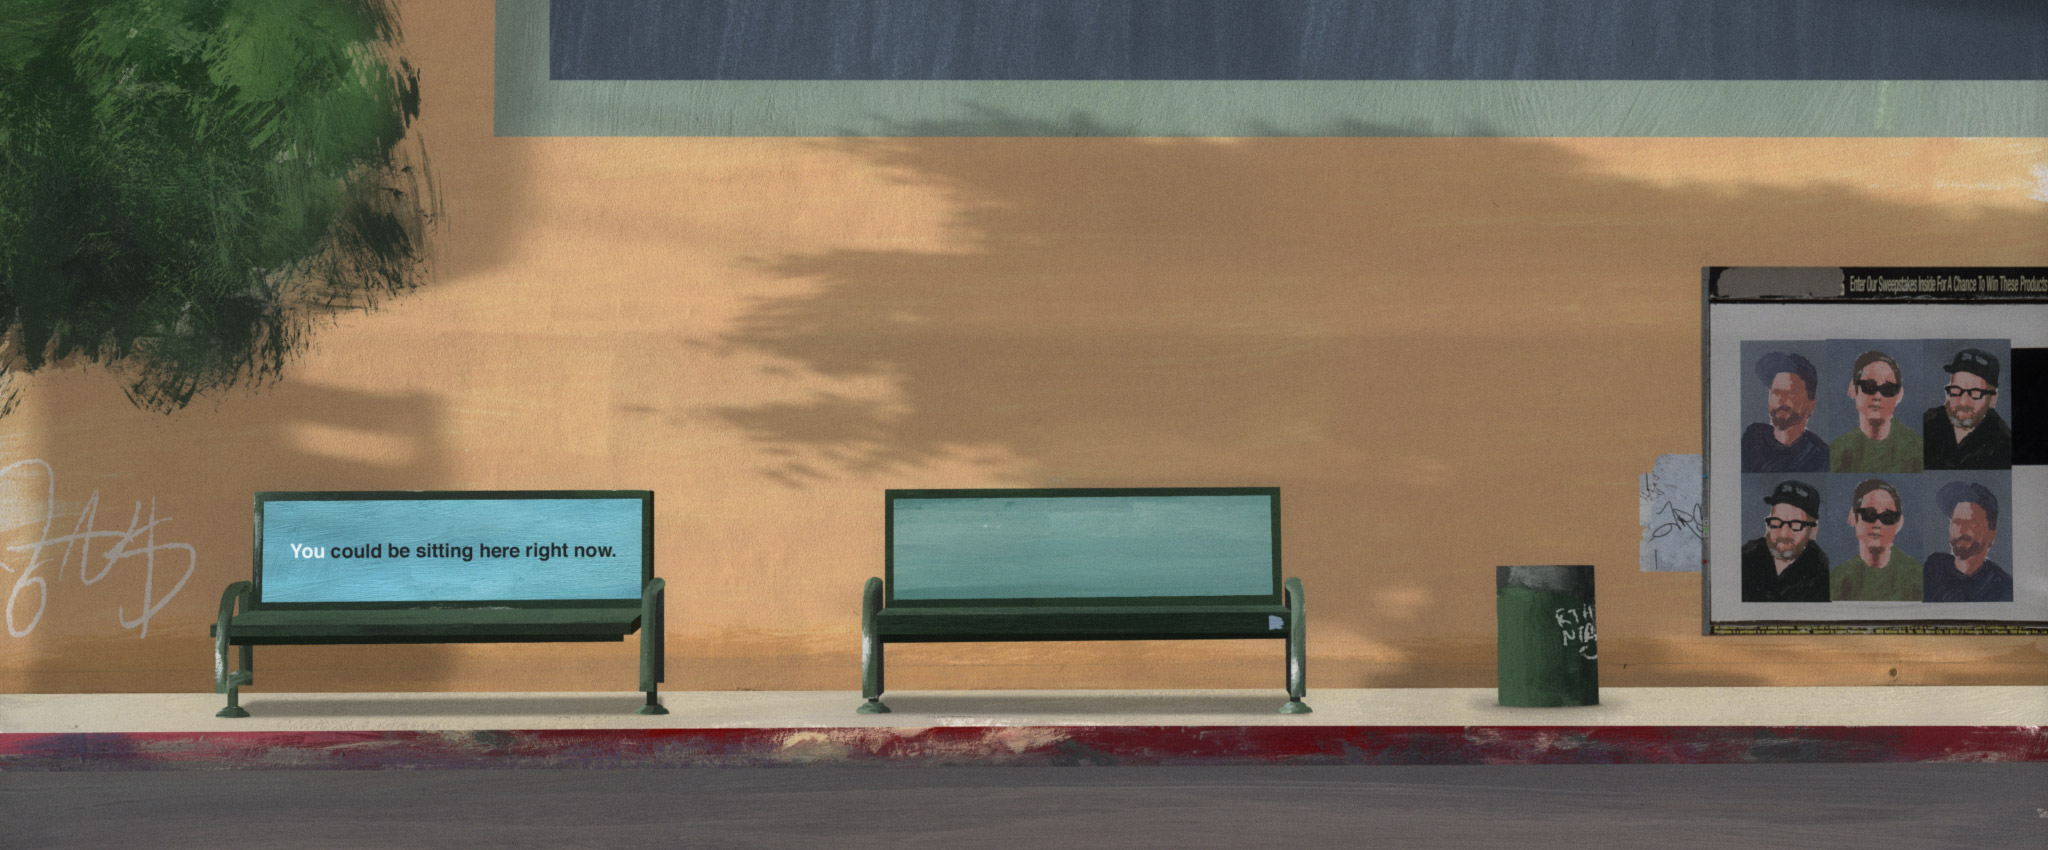 Hollywood Bus Bench